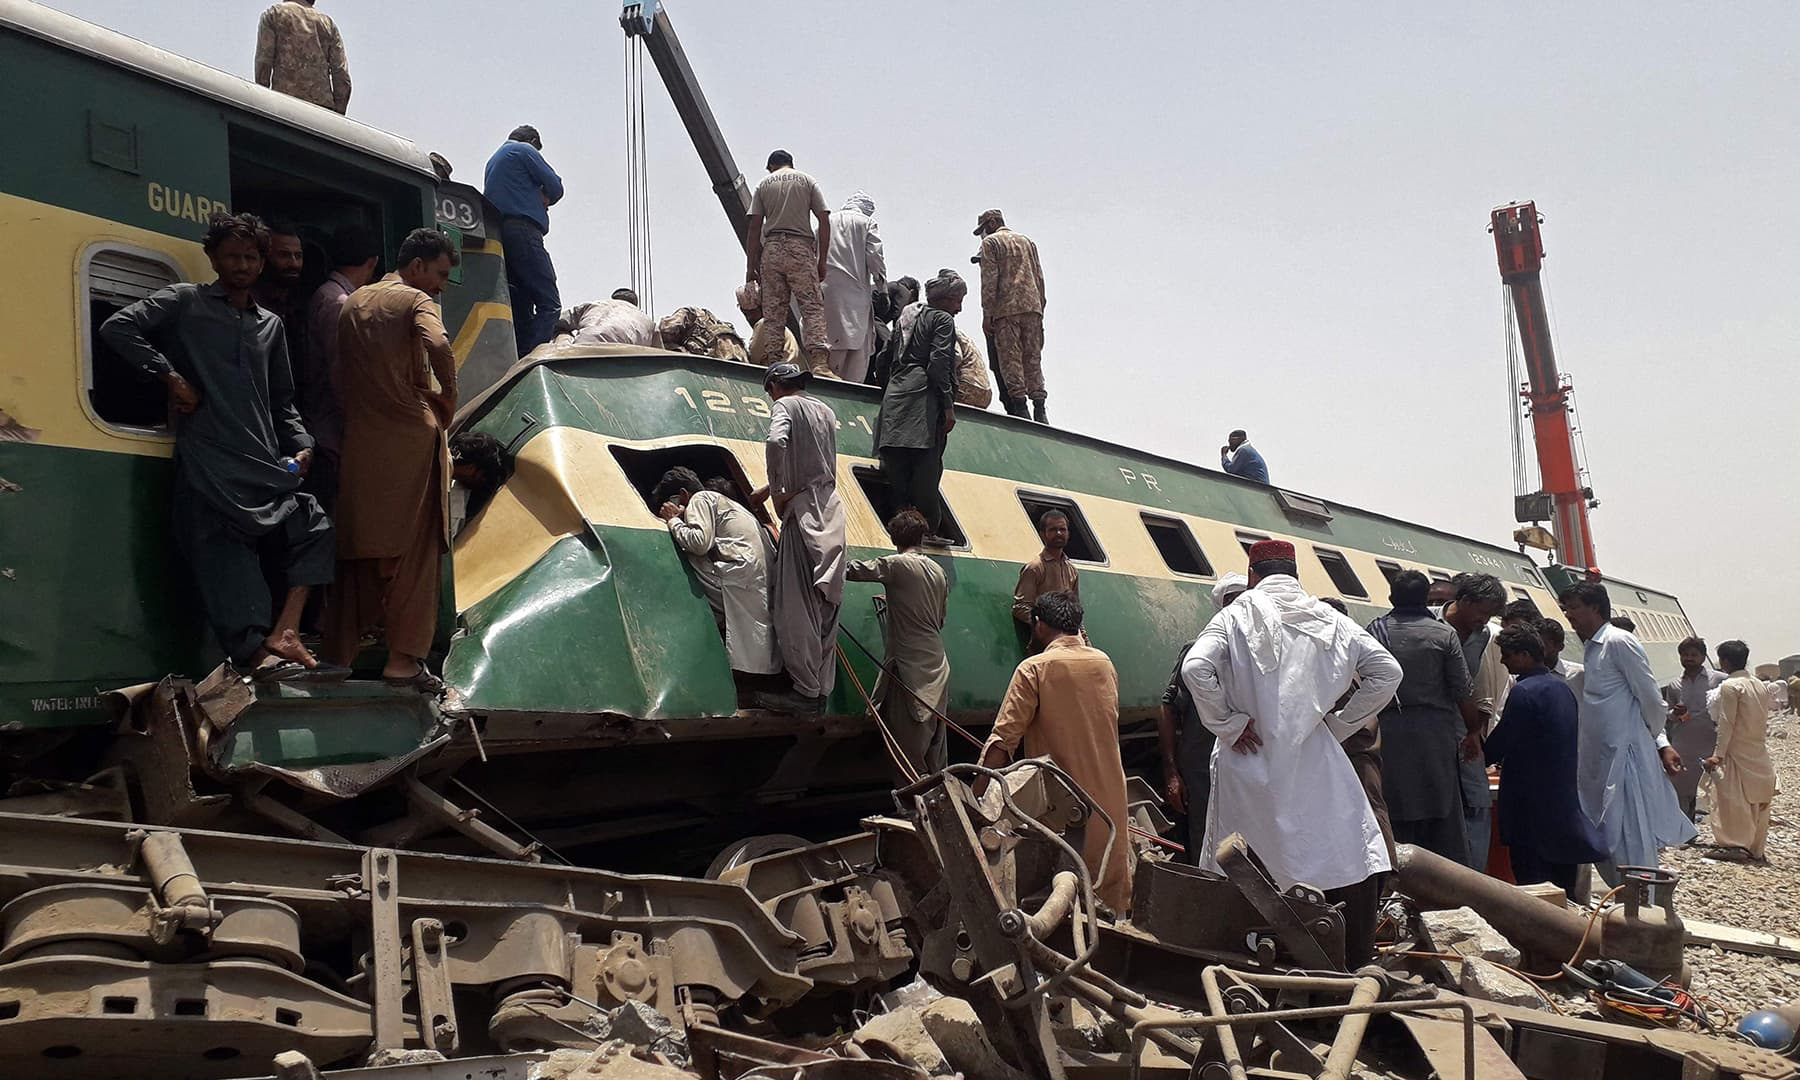 Security personnel and onlookers stand at the site of a train accident in Daharki on June 7. — AFP